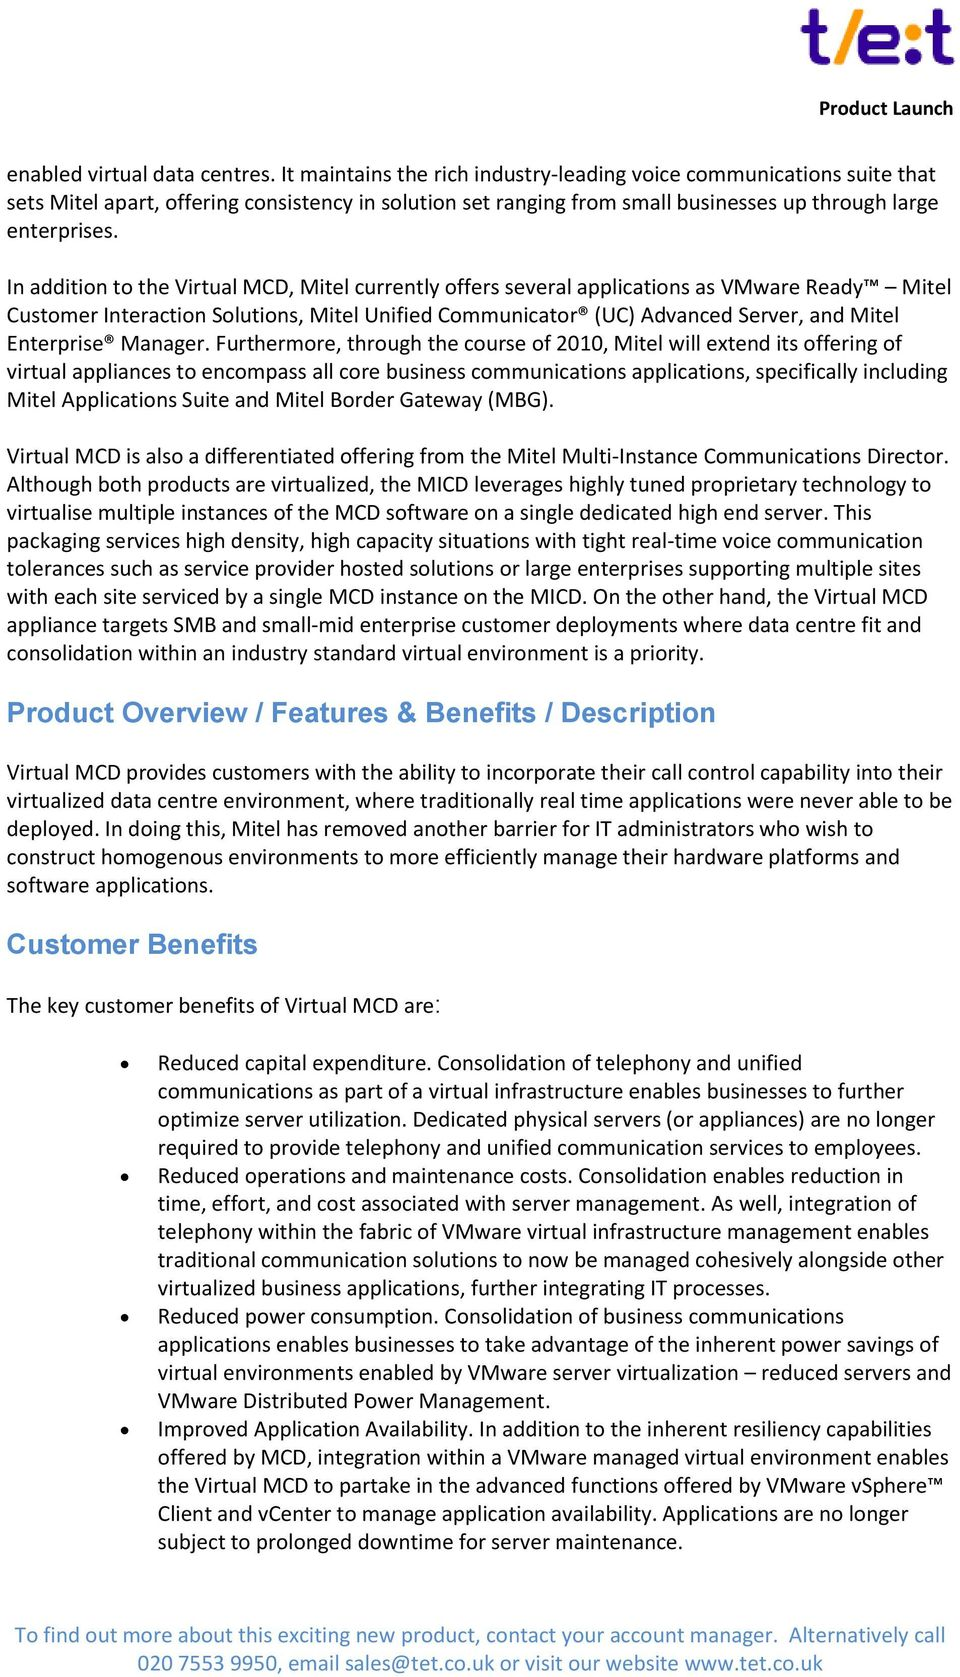 In addition to the Virtual MCD, Mitel currently offers several applications as VMware Ready Mitel Customer Interaction Solutions, Mitel Unified Communicator (UC) Advanced Server, and Mitel Enterprise